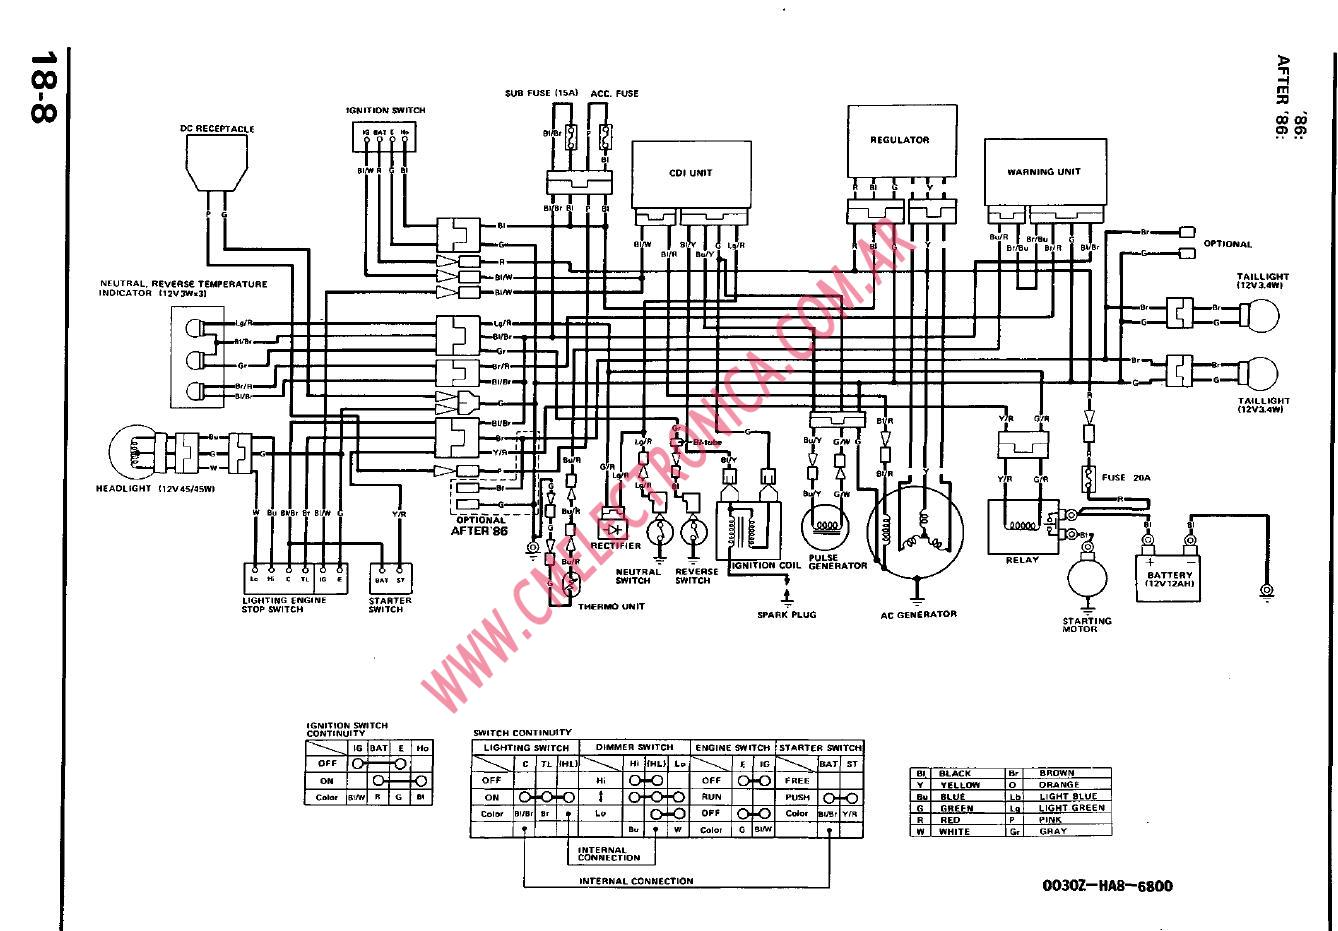 Diagrams Wiring   Arctic Cat 500 Atv Wiring Diagram